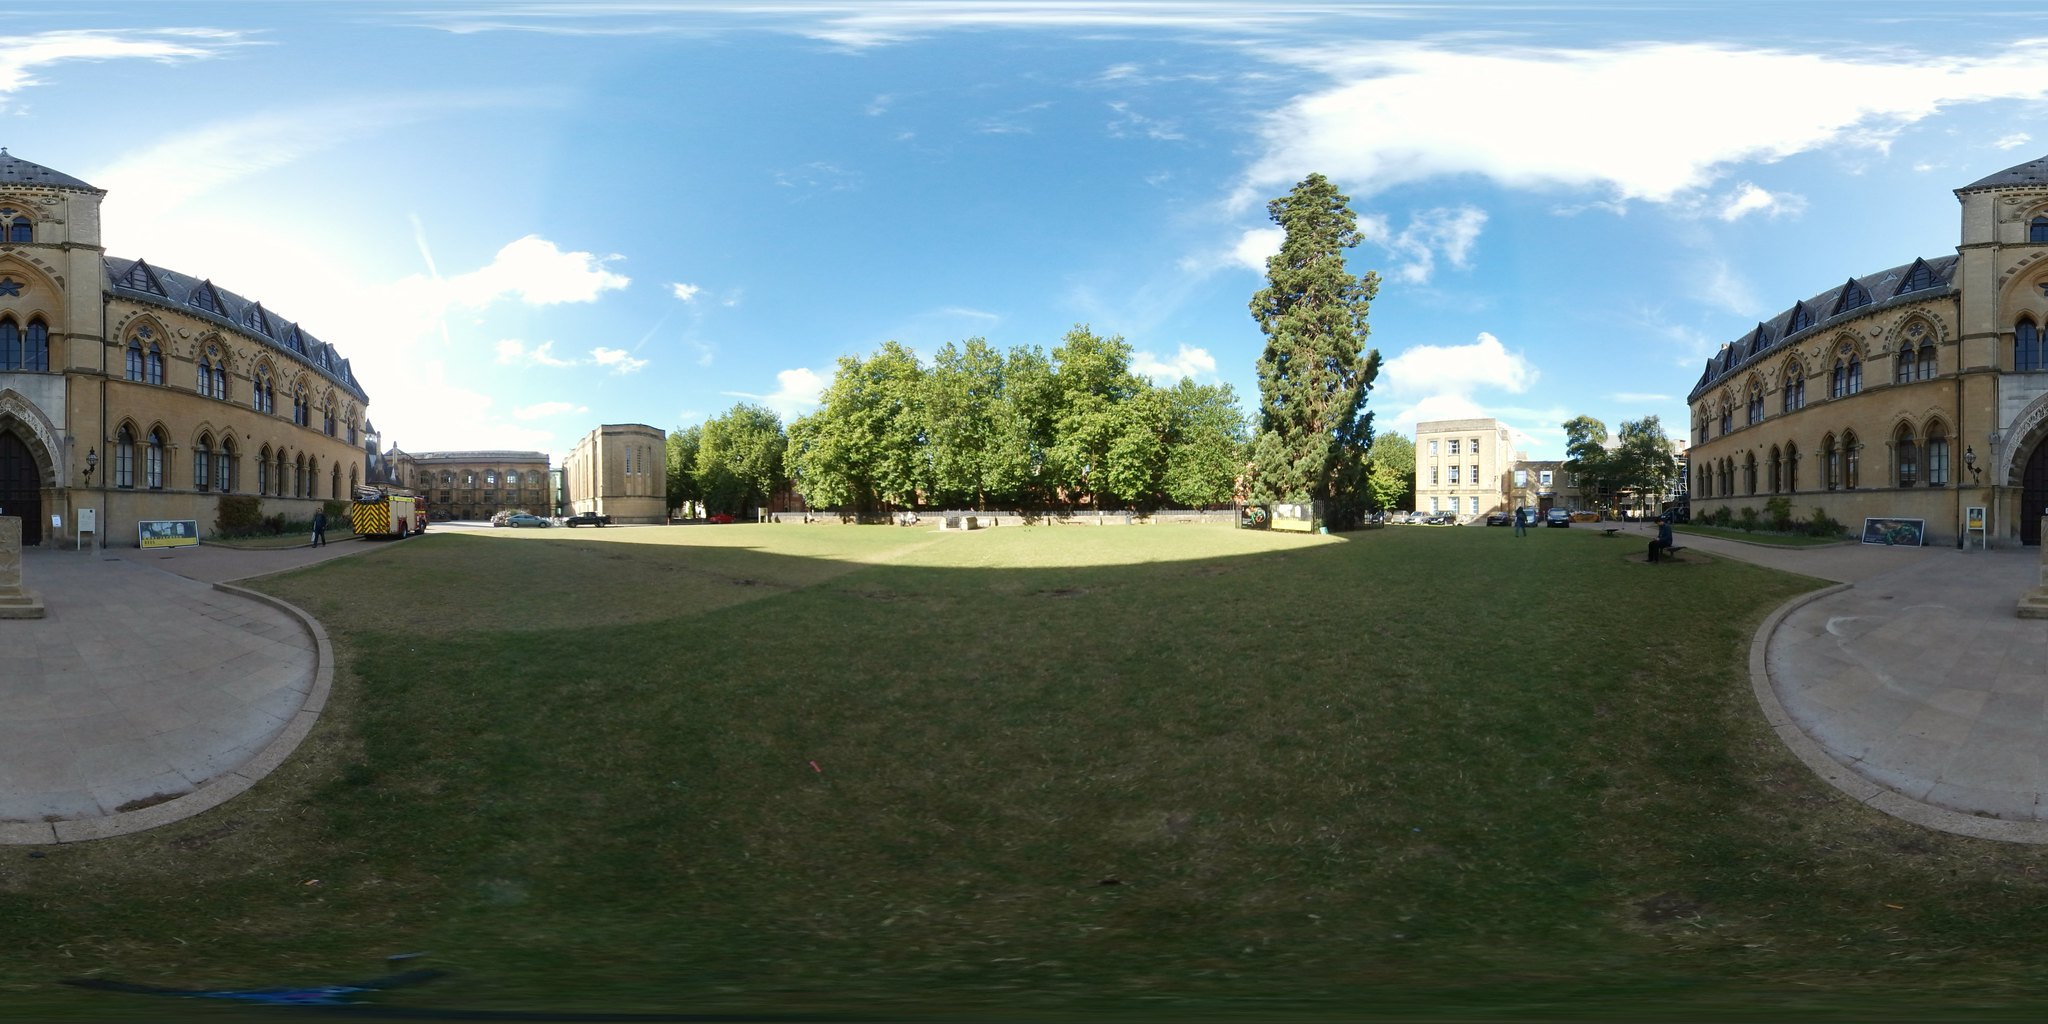 First 360 photo taken by RSL Staff using the Gear 360